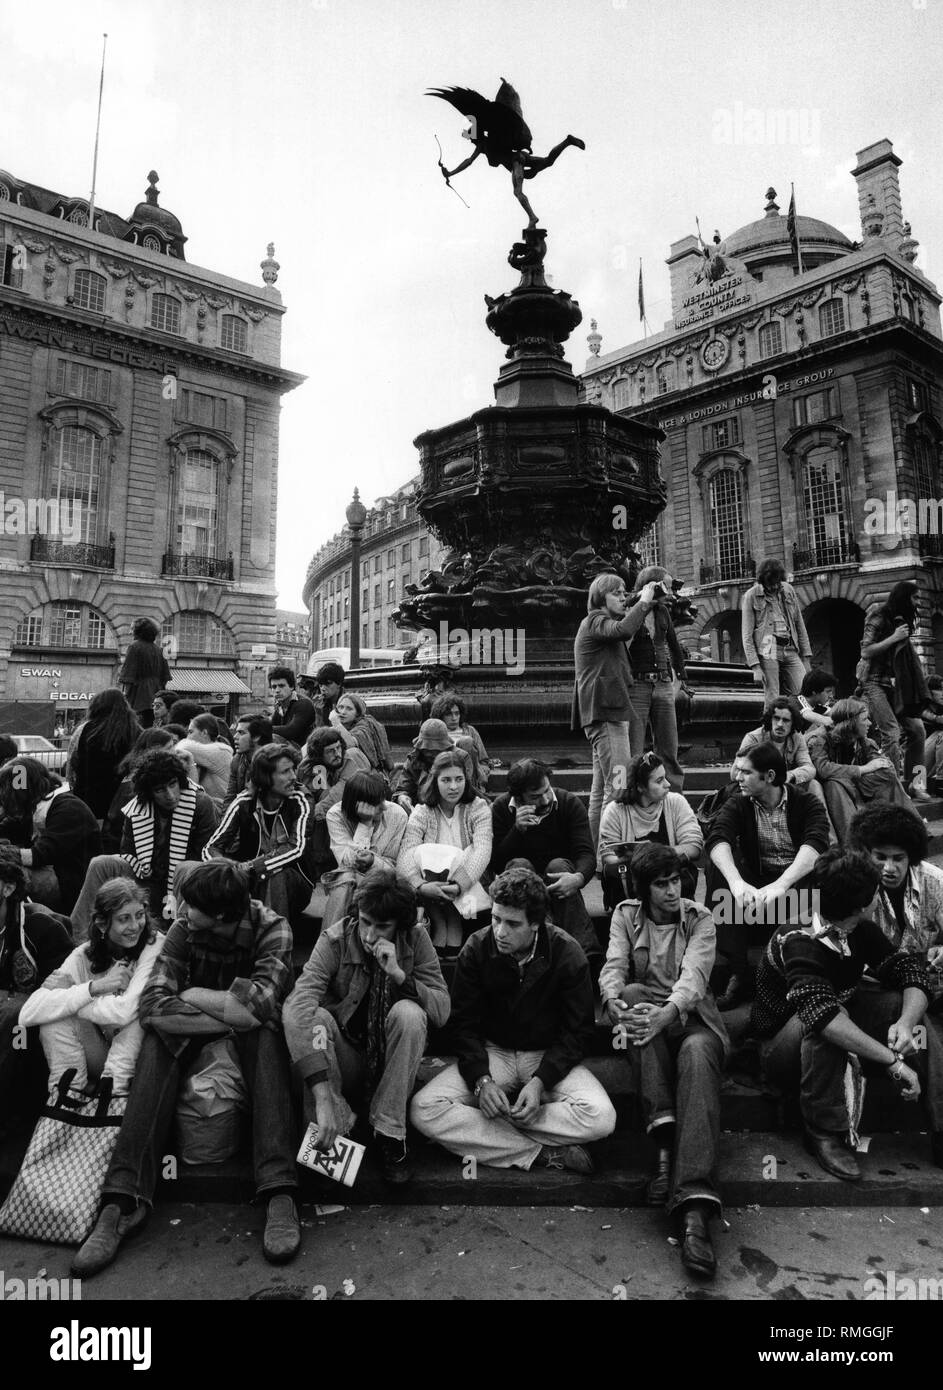 Tourists sit on the steps of the Shaftesbury Memorial Fountain on Piccadilly Circus in London. - Stock Image